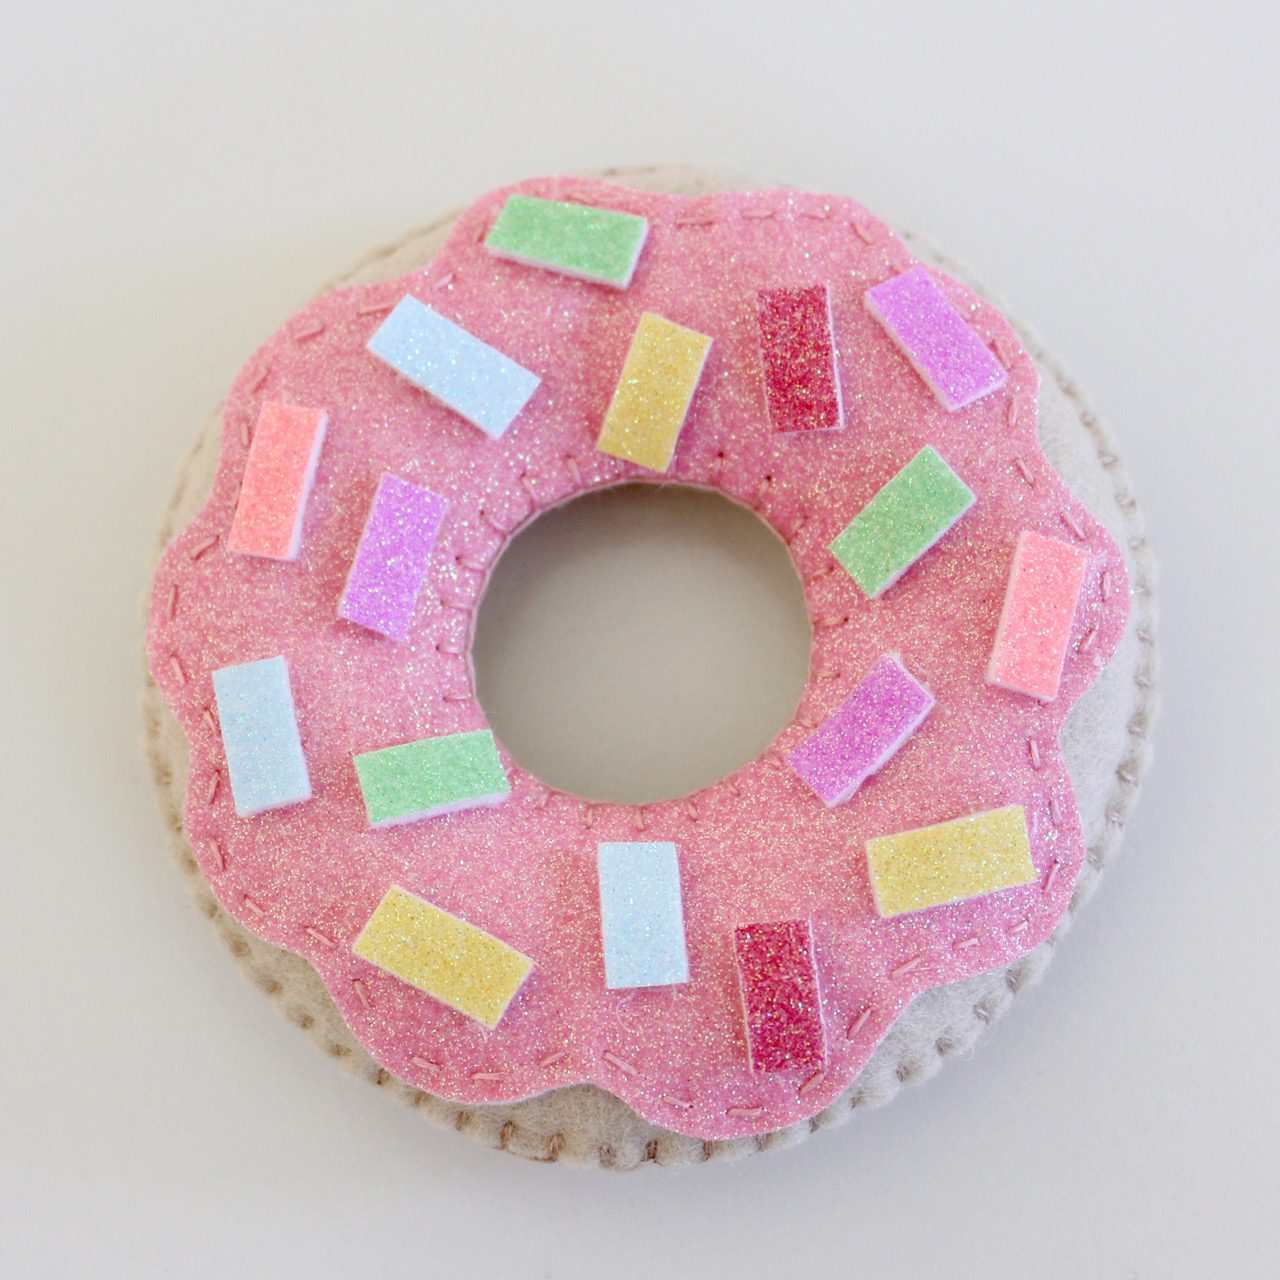 felt-donuts-from-molly-and-mama-8